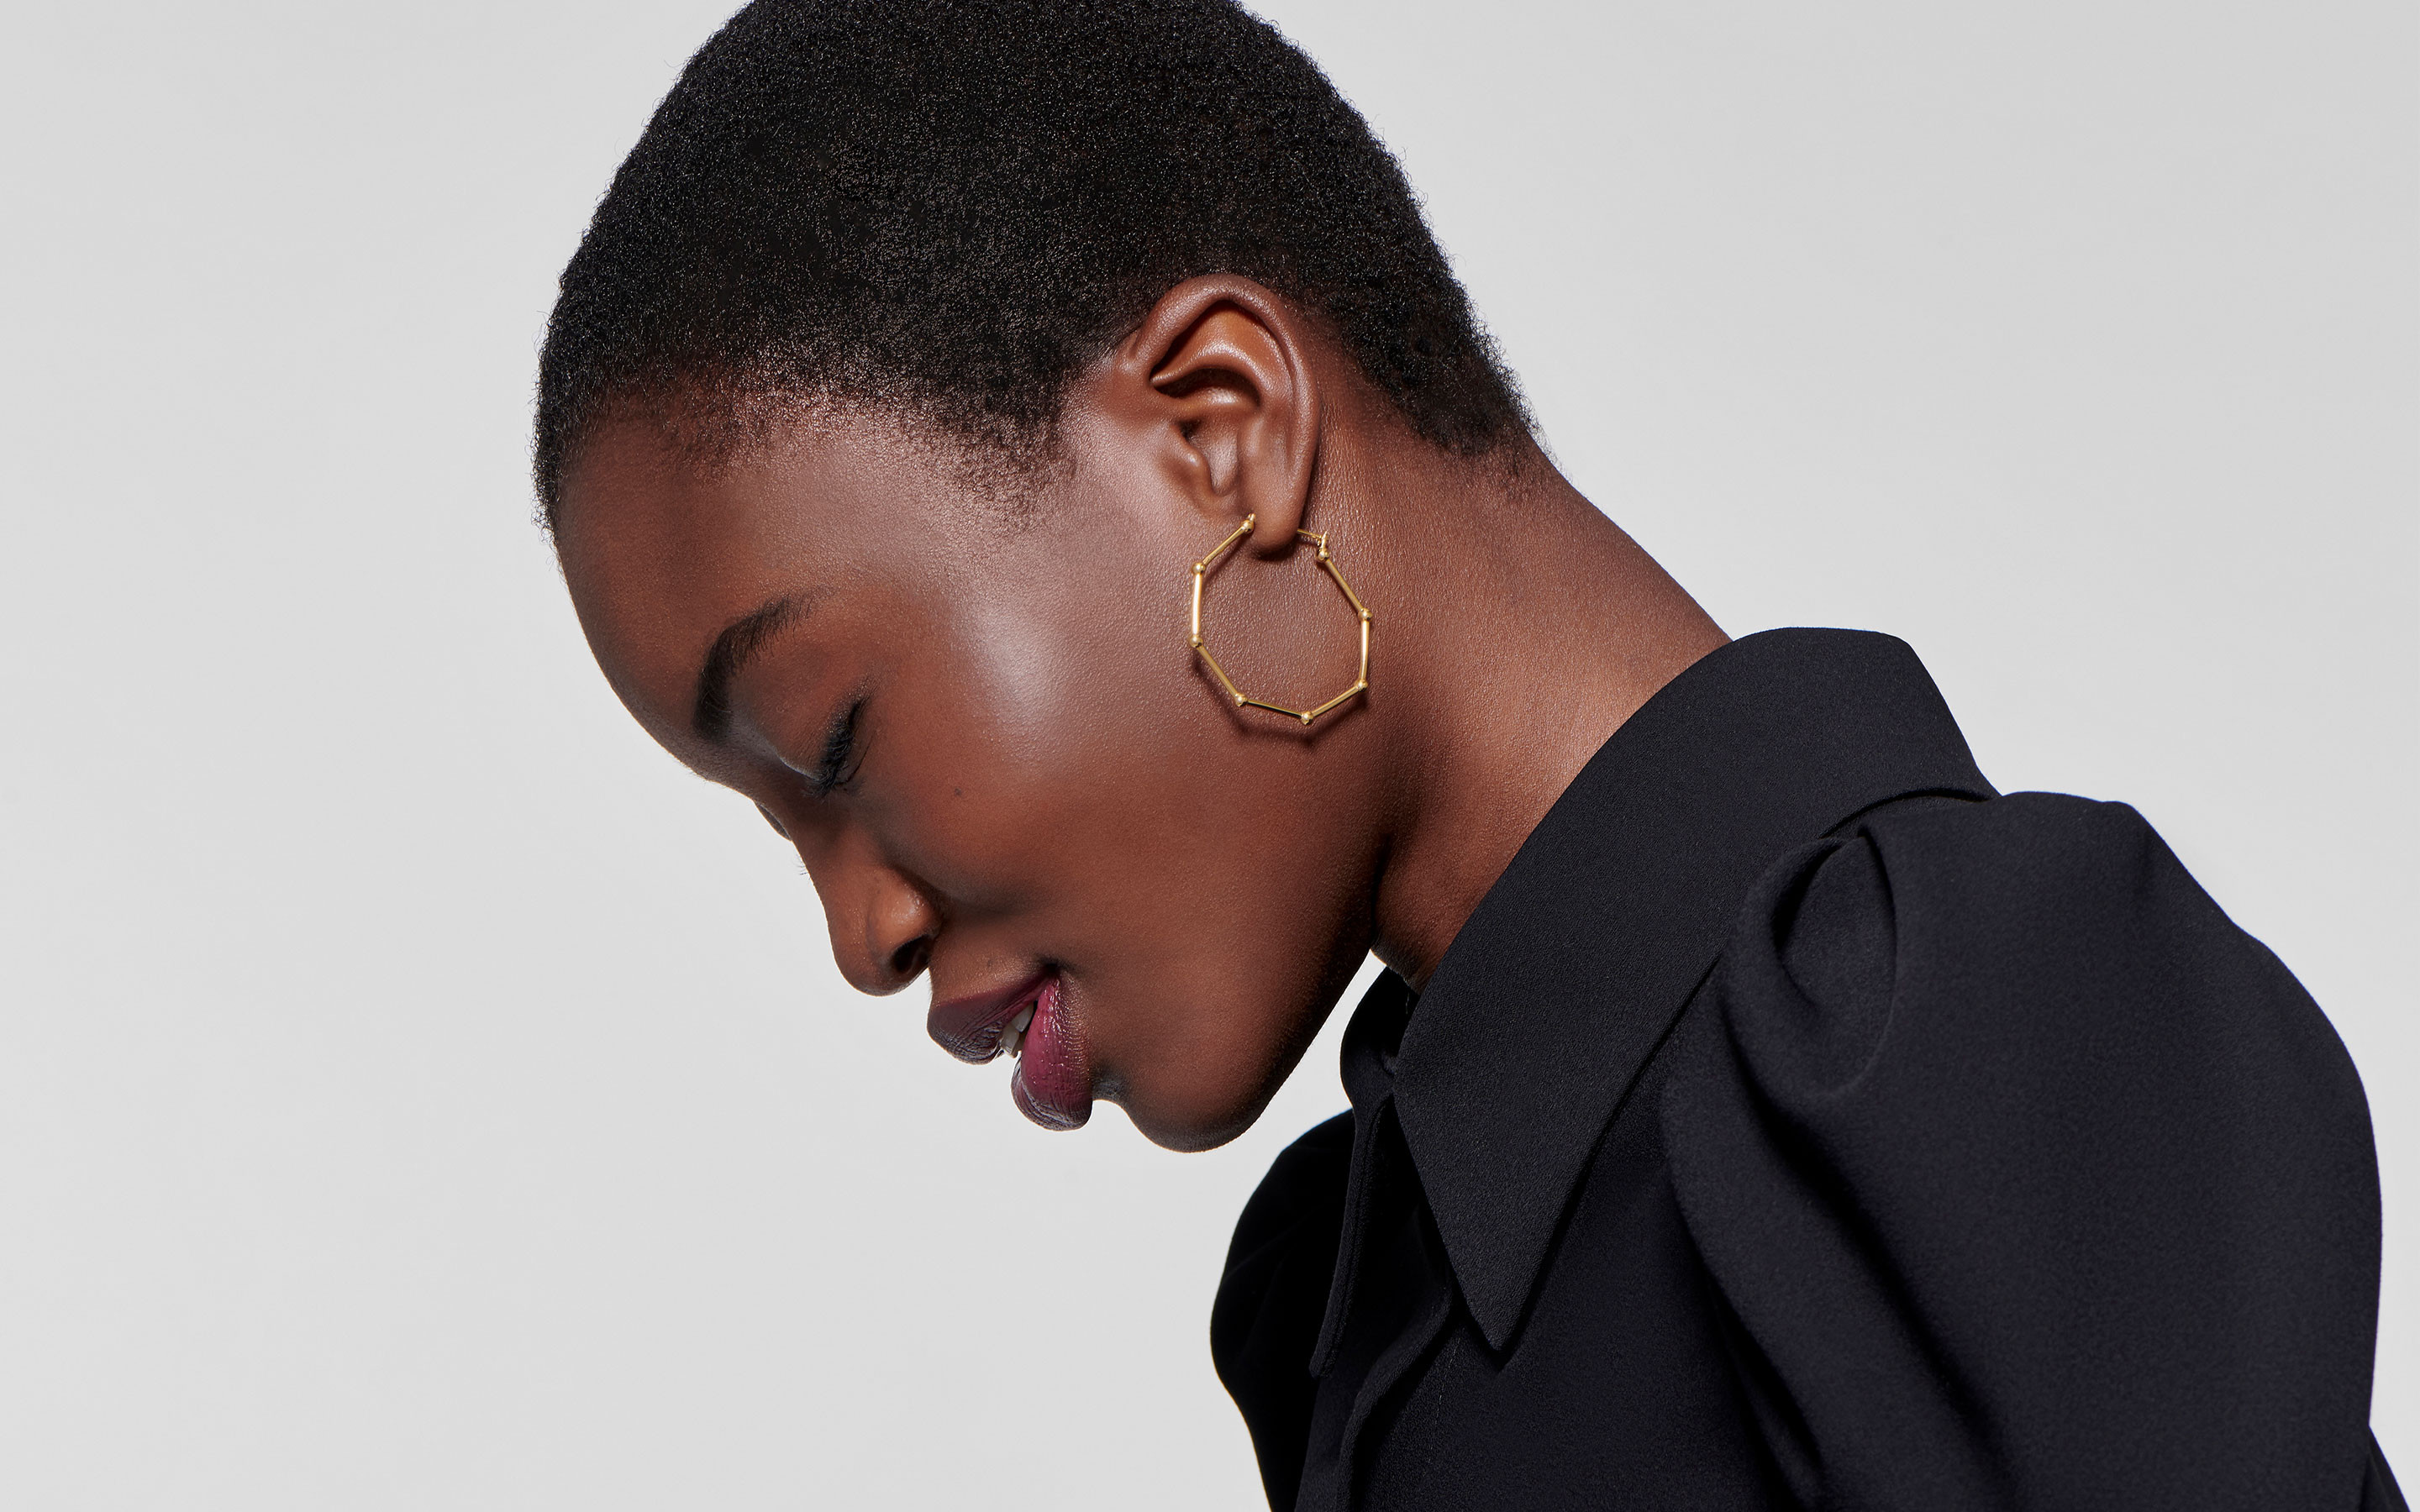 pretty black model in reflective pose wearing 22 karat gold geometric hoop earrings